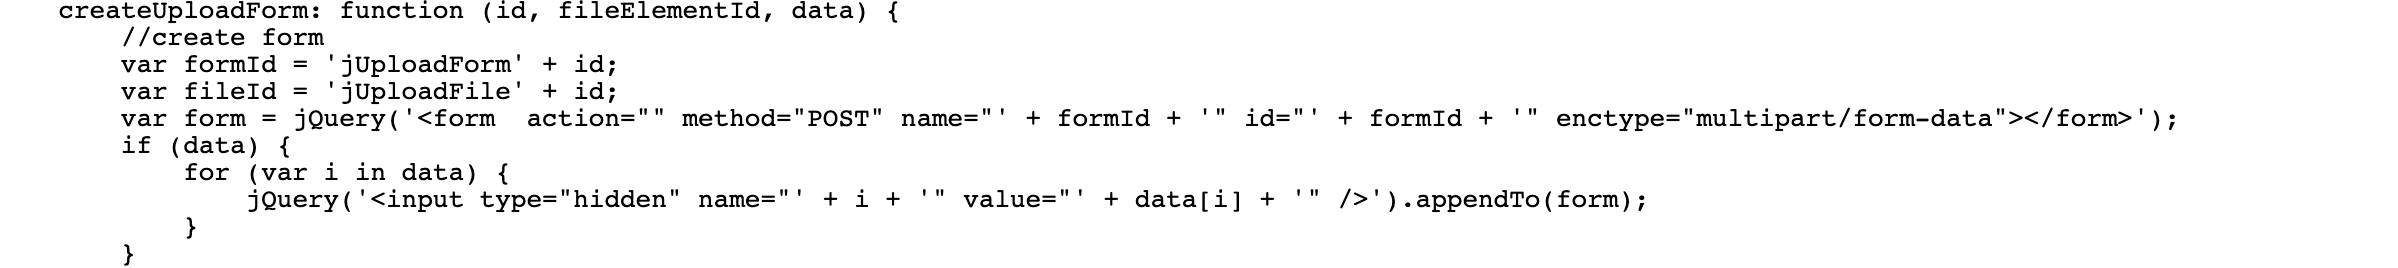 Scheme-1, js file is appending an HTML upload form into page.